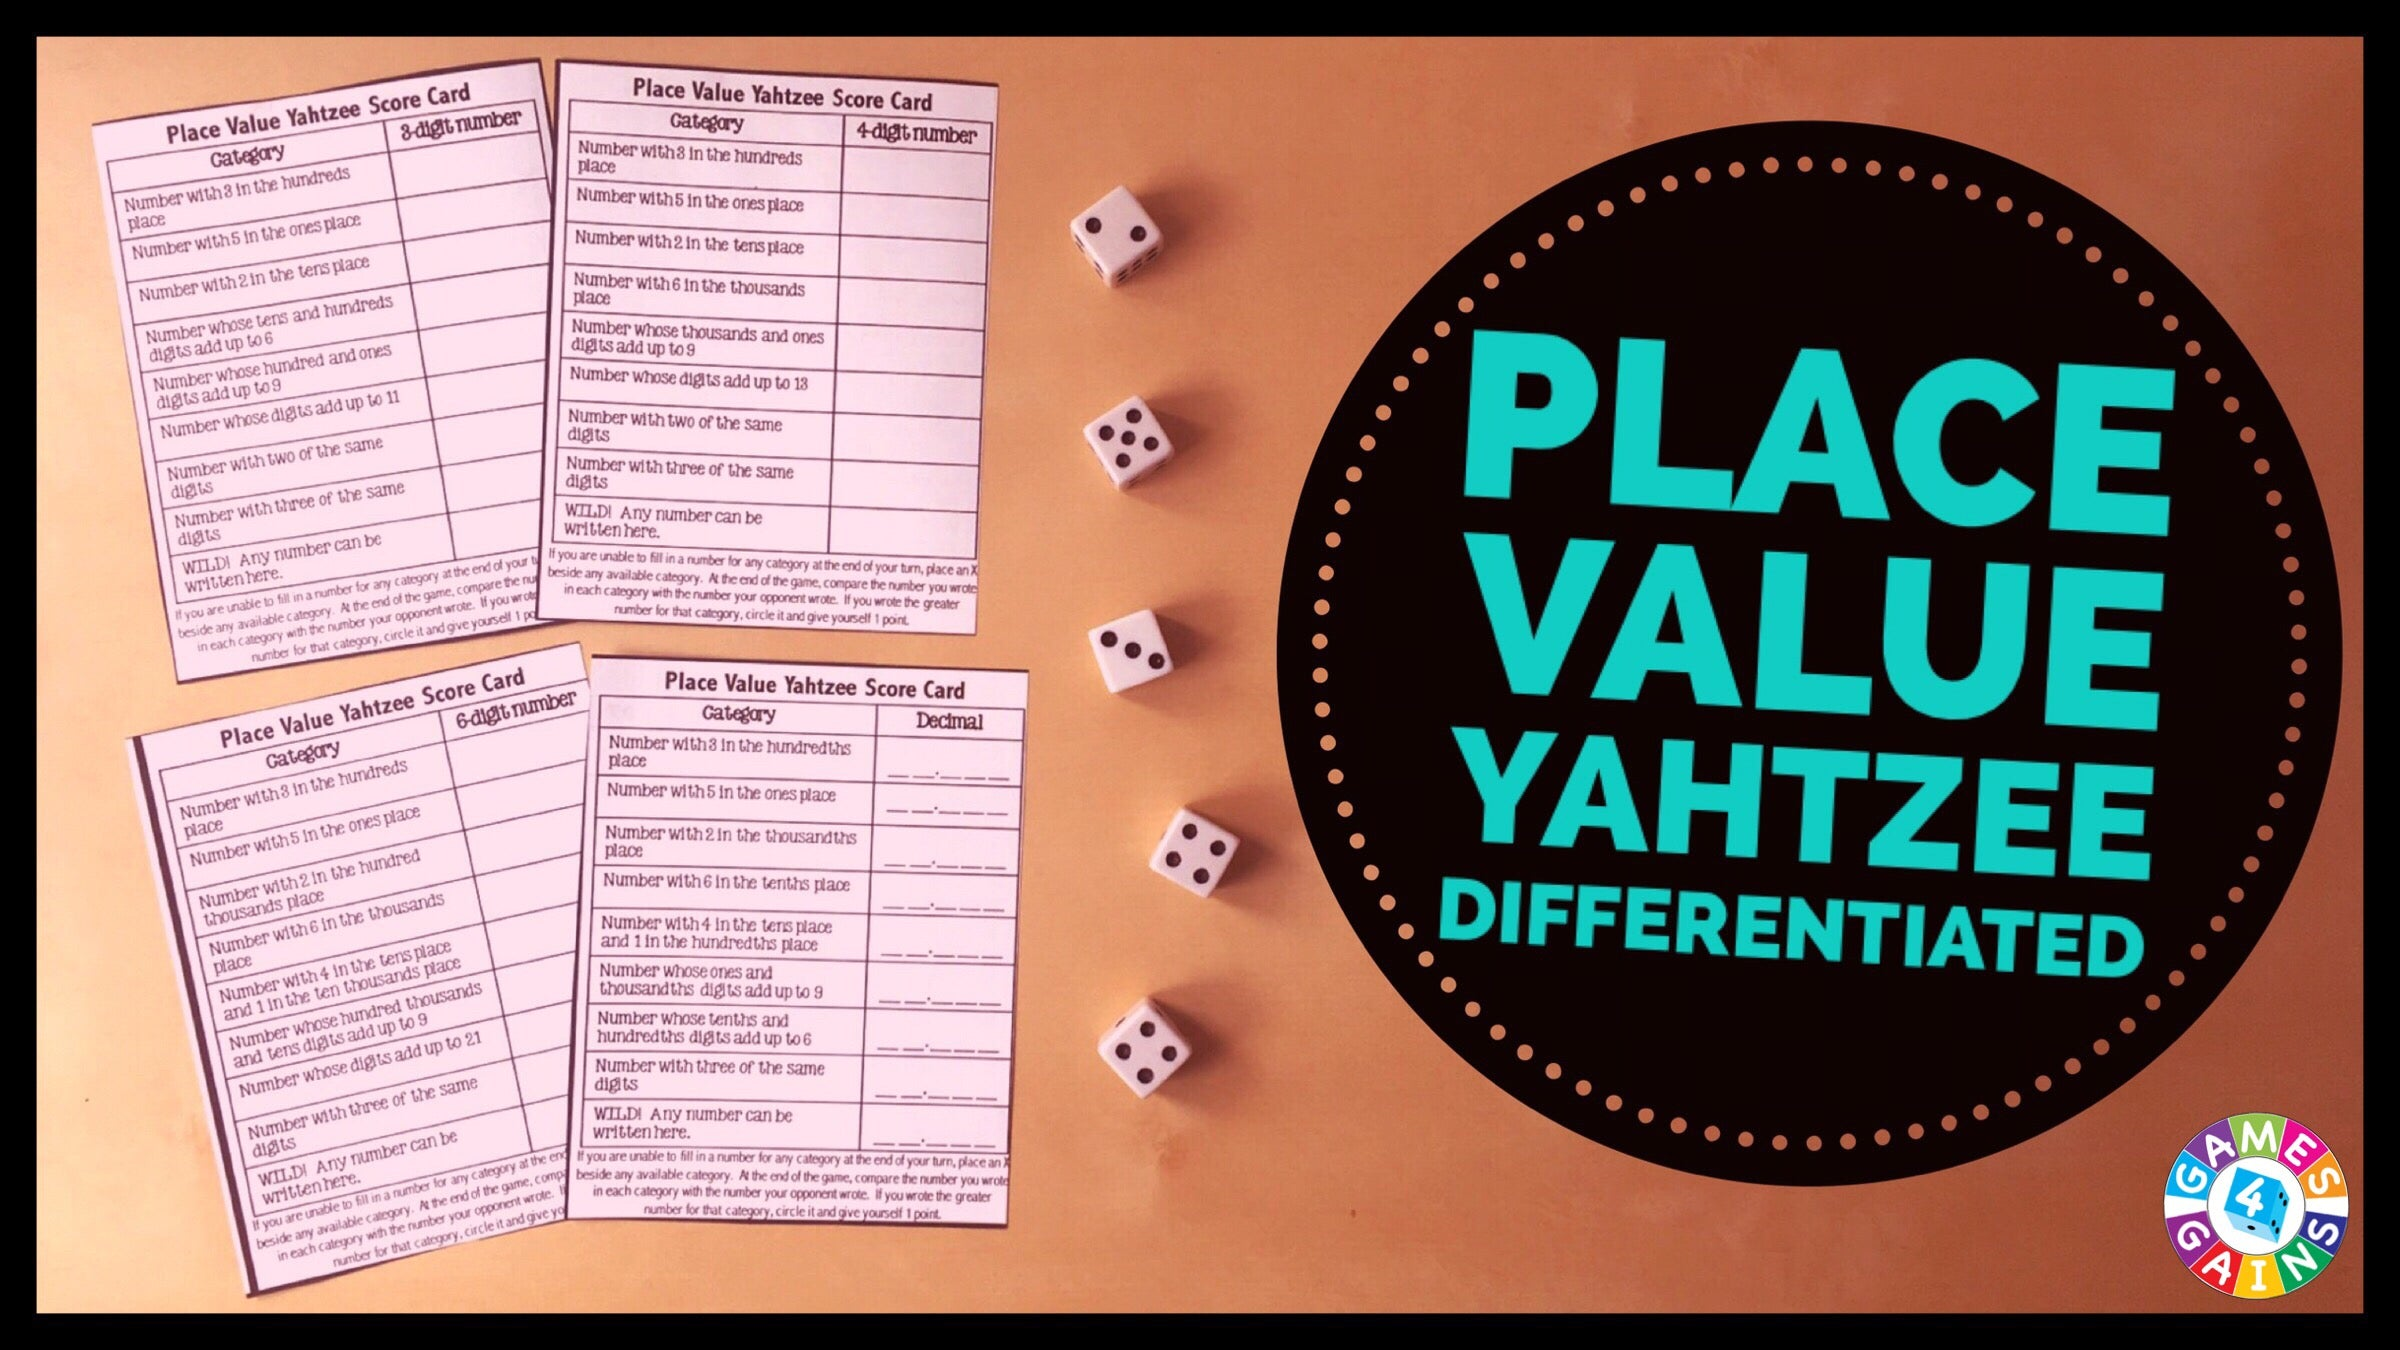 Game Of Love Sheets score some points with place value yahtzee! – games 4 gains